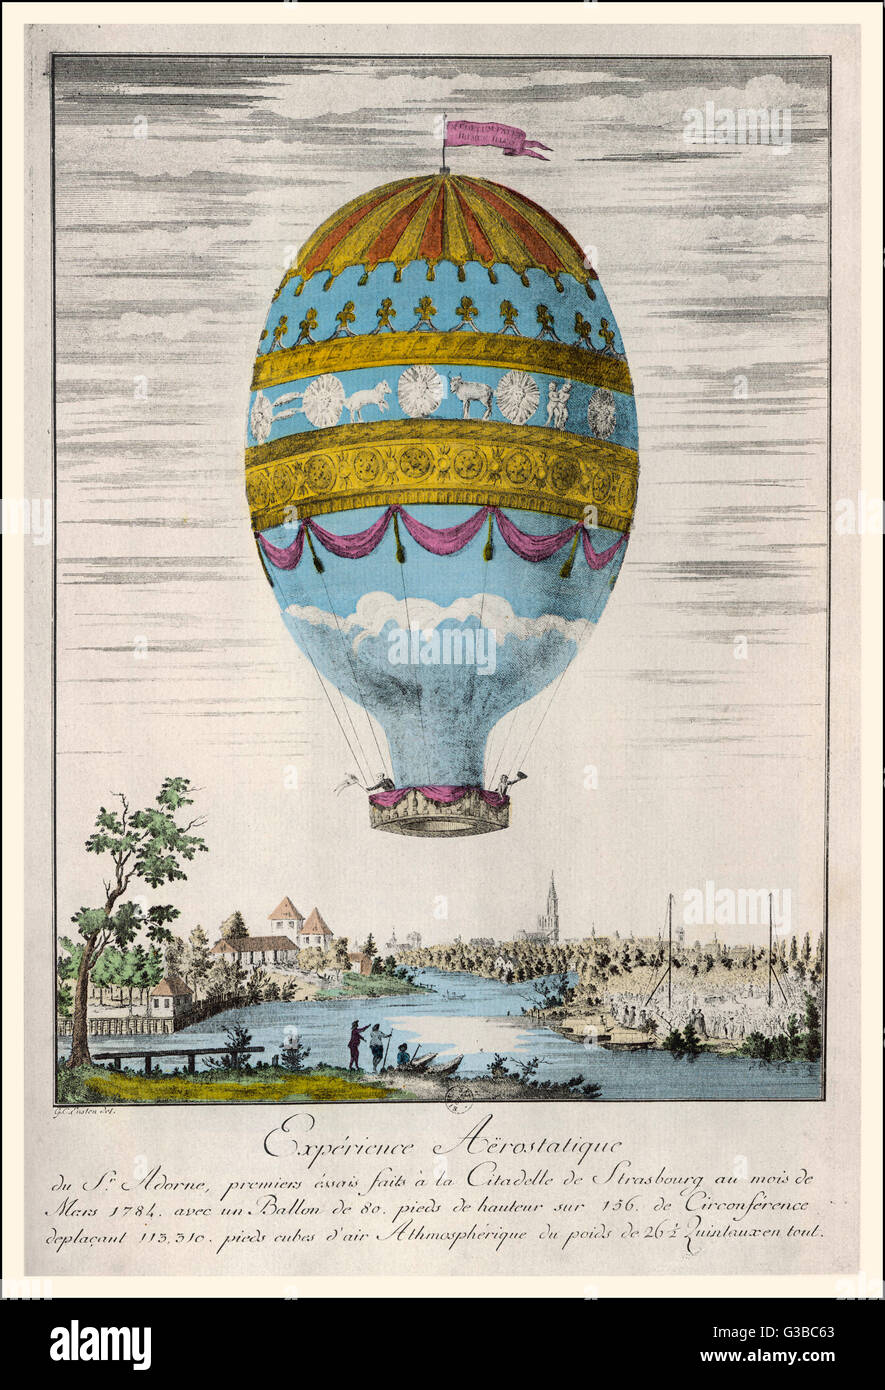 The aeronautic experience of  Adorne who flew over  Strasbourg, France, at a  height of 80 feet.  He and his  companion - Stock Image